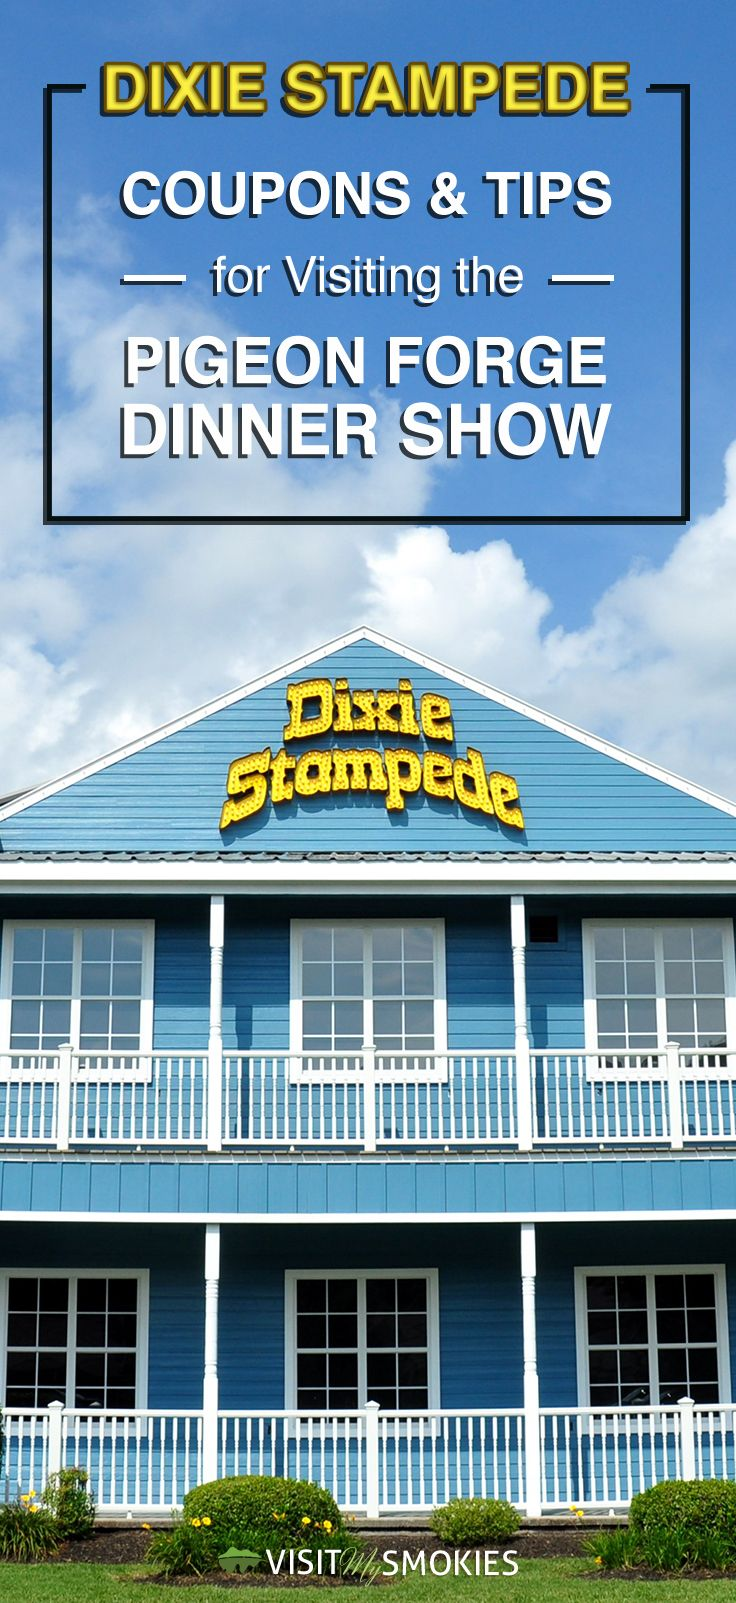 Dixie stampede coupon code 2018